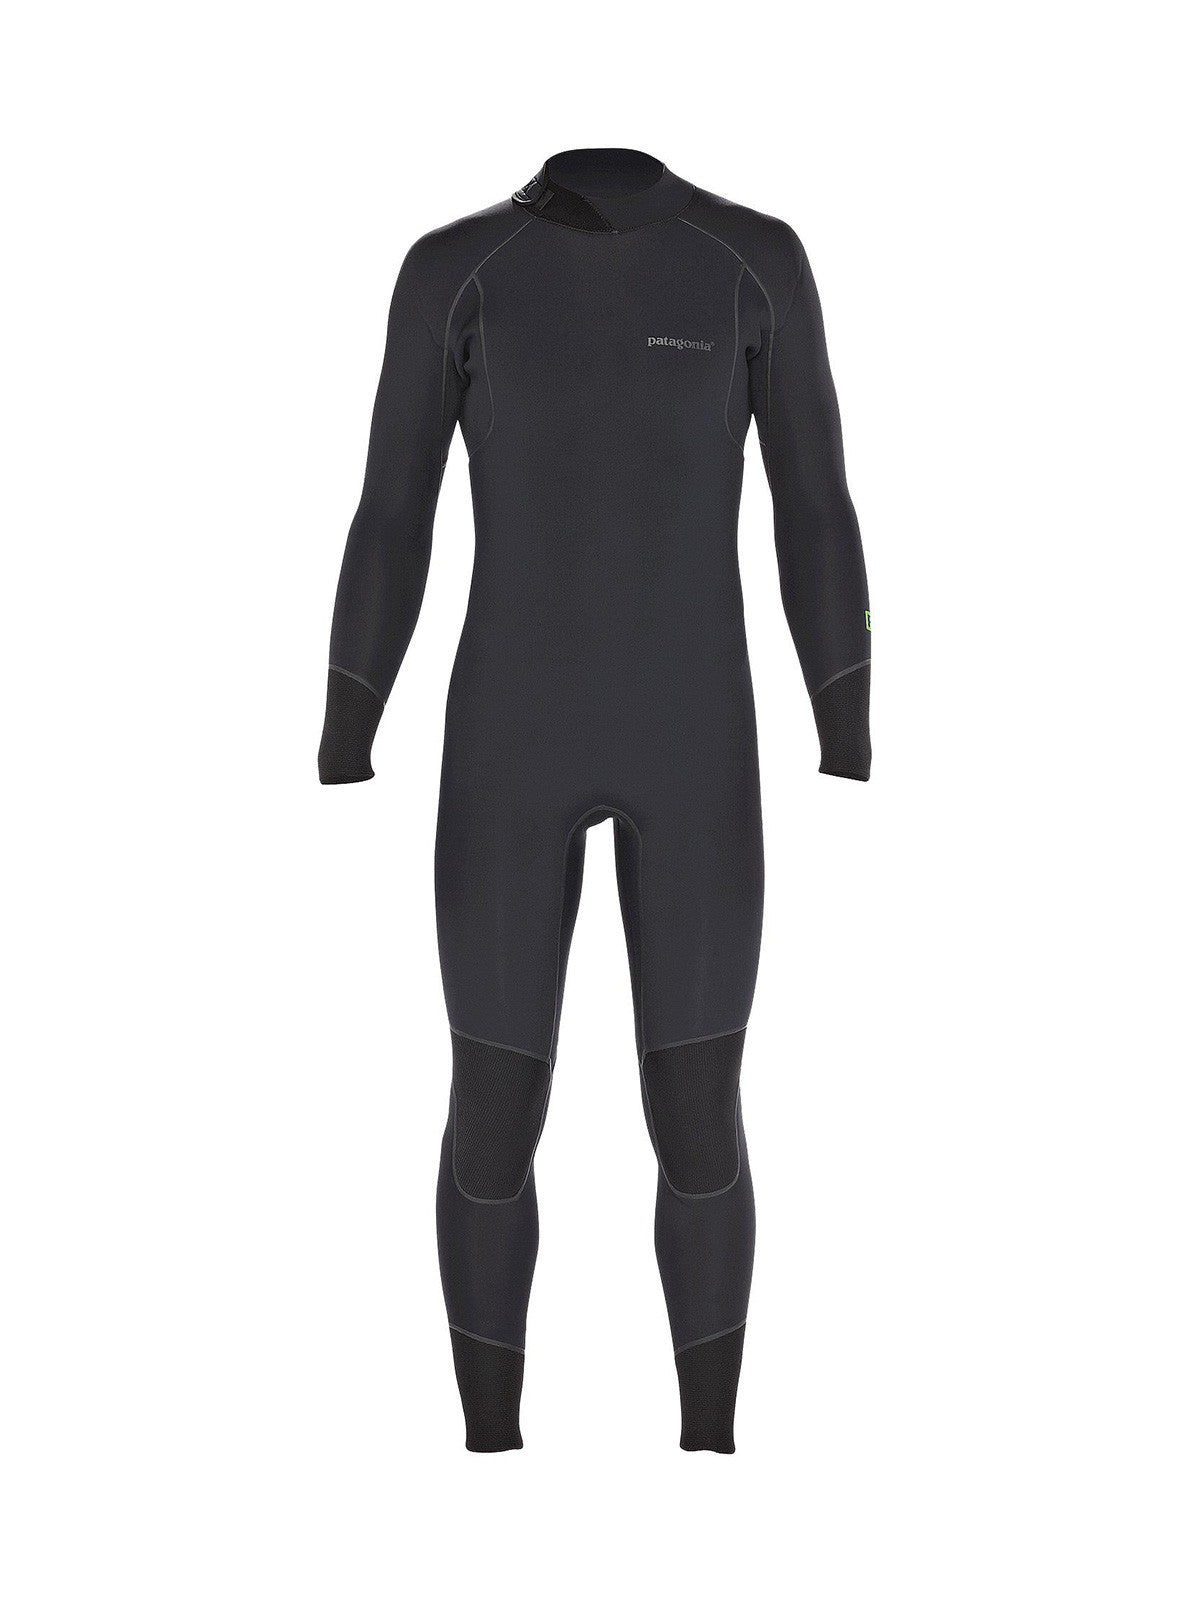 Patagonia M's R2 Back Zip Full Suit